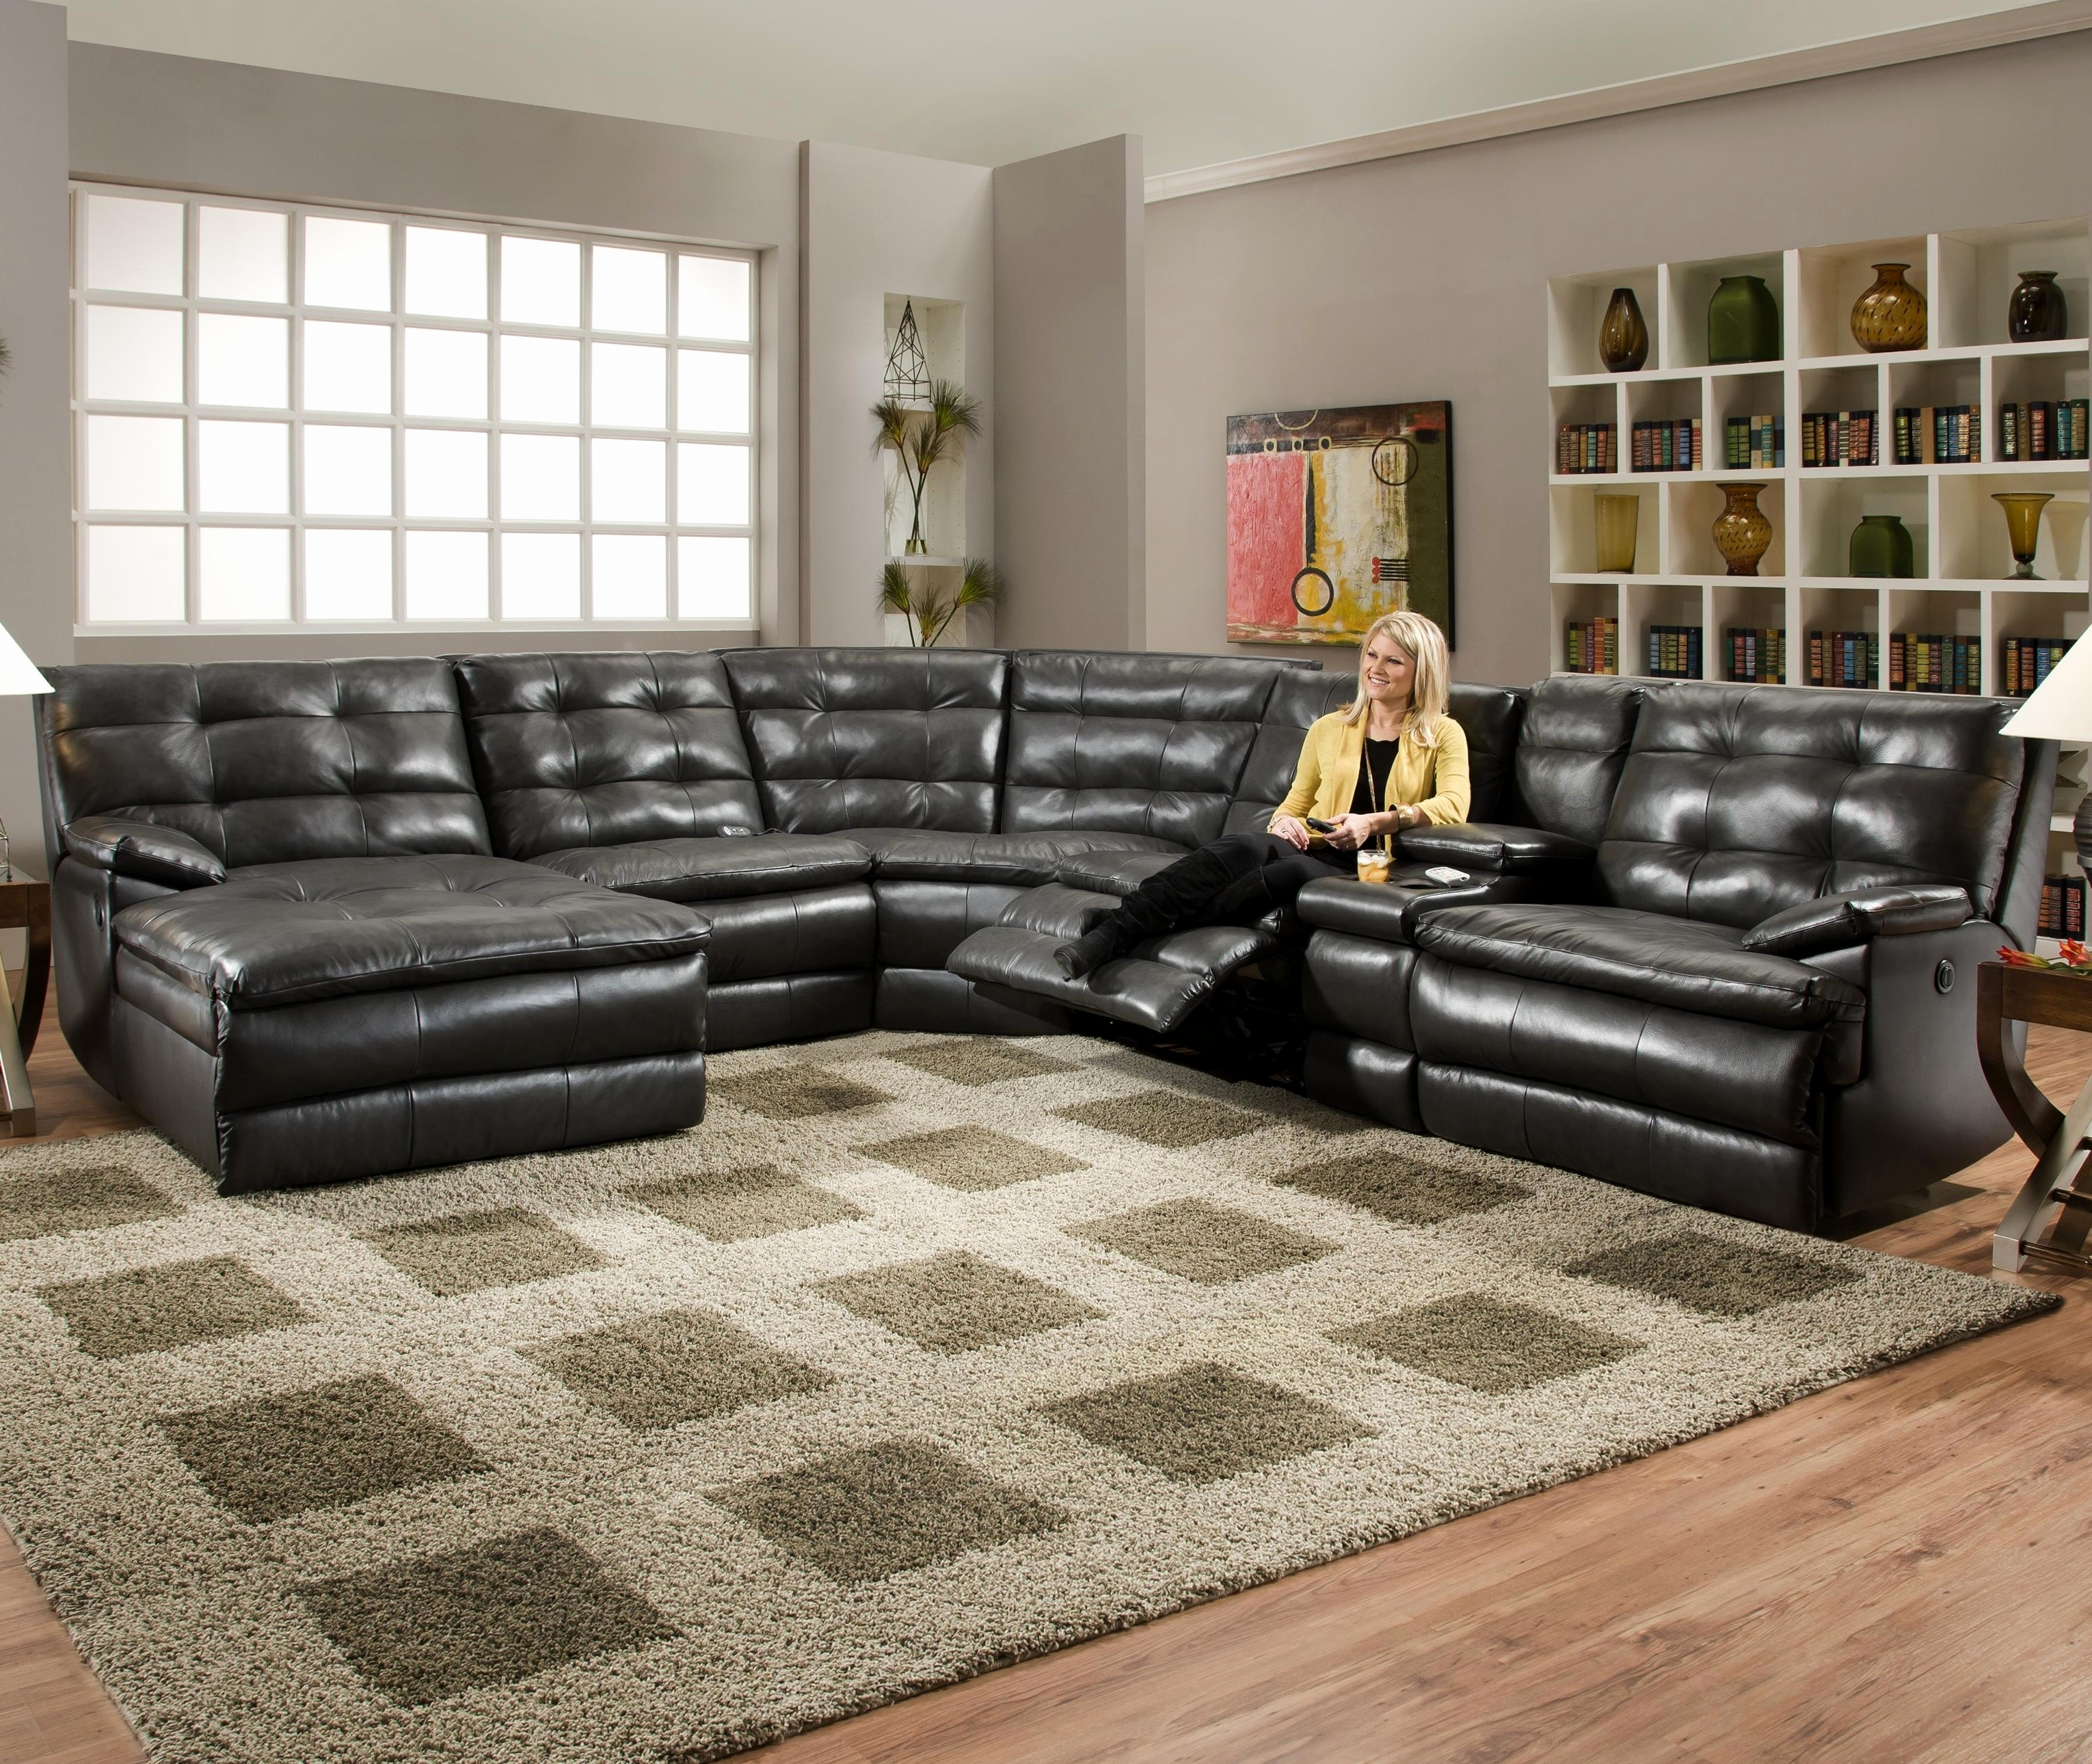 Awesome Modern Curved Sectional Sofa 2018 – Couches Ideas For Latest Curved Sectional Sofas With Recliner (View 19 of 20)